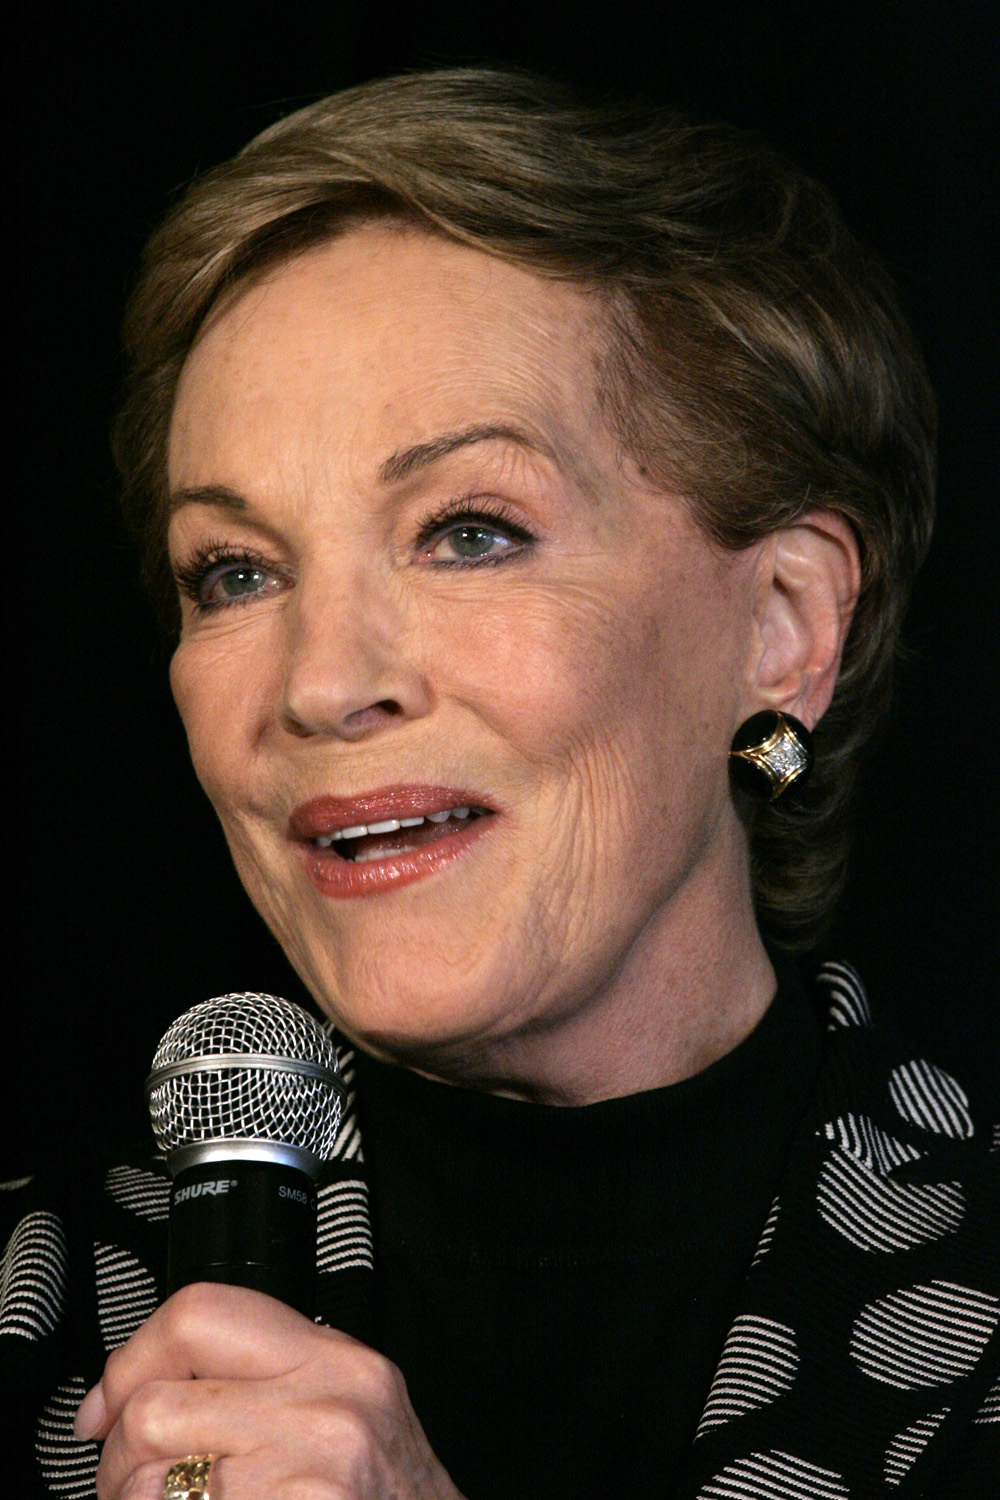 May 2013 Fashion Magazine Covers: File:Julie Andrews In May 2013.jpg